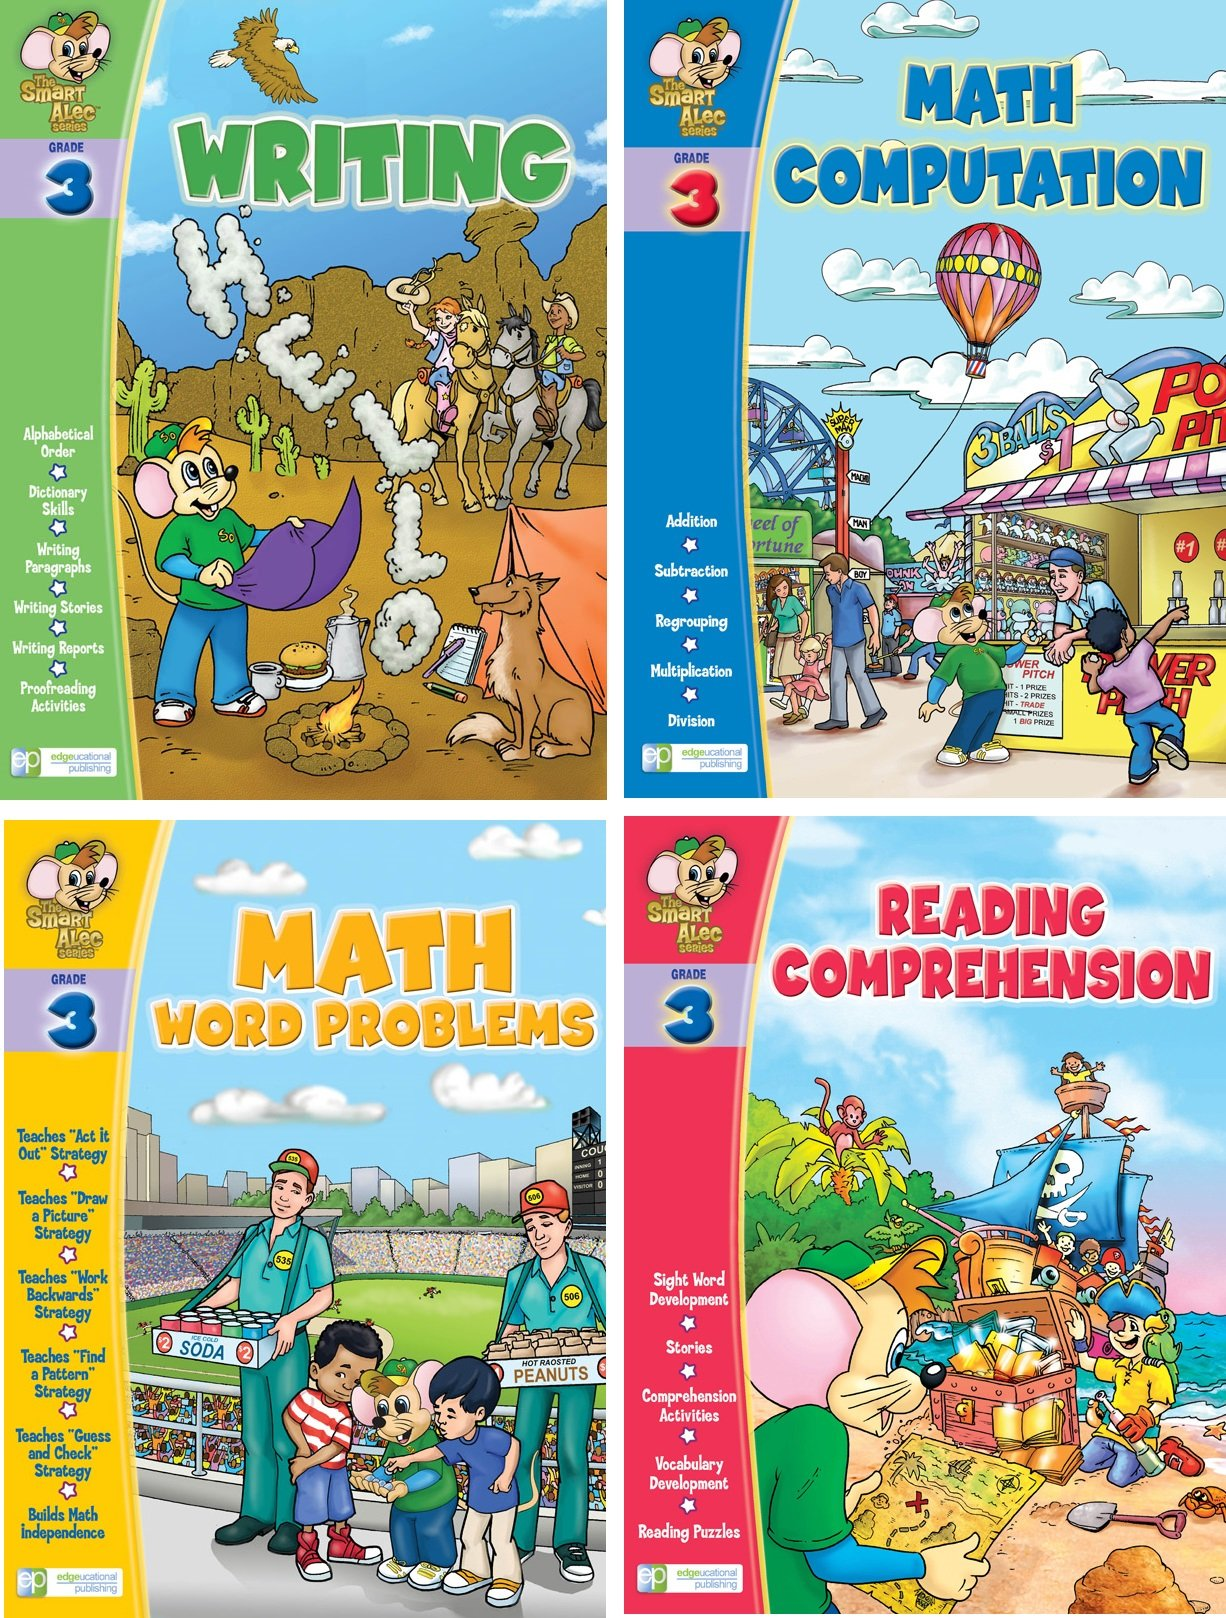 Smart Alec (3rd Grade) Four Pack Learning Series, Includes: Writing, Math Readiness, Reading Readiness, Math Word Problems by Edgeucational Publishing (Image #1)